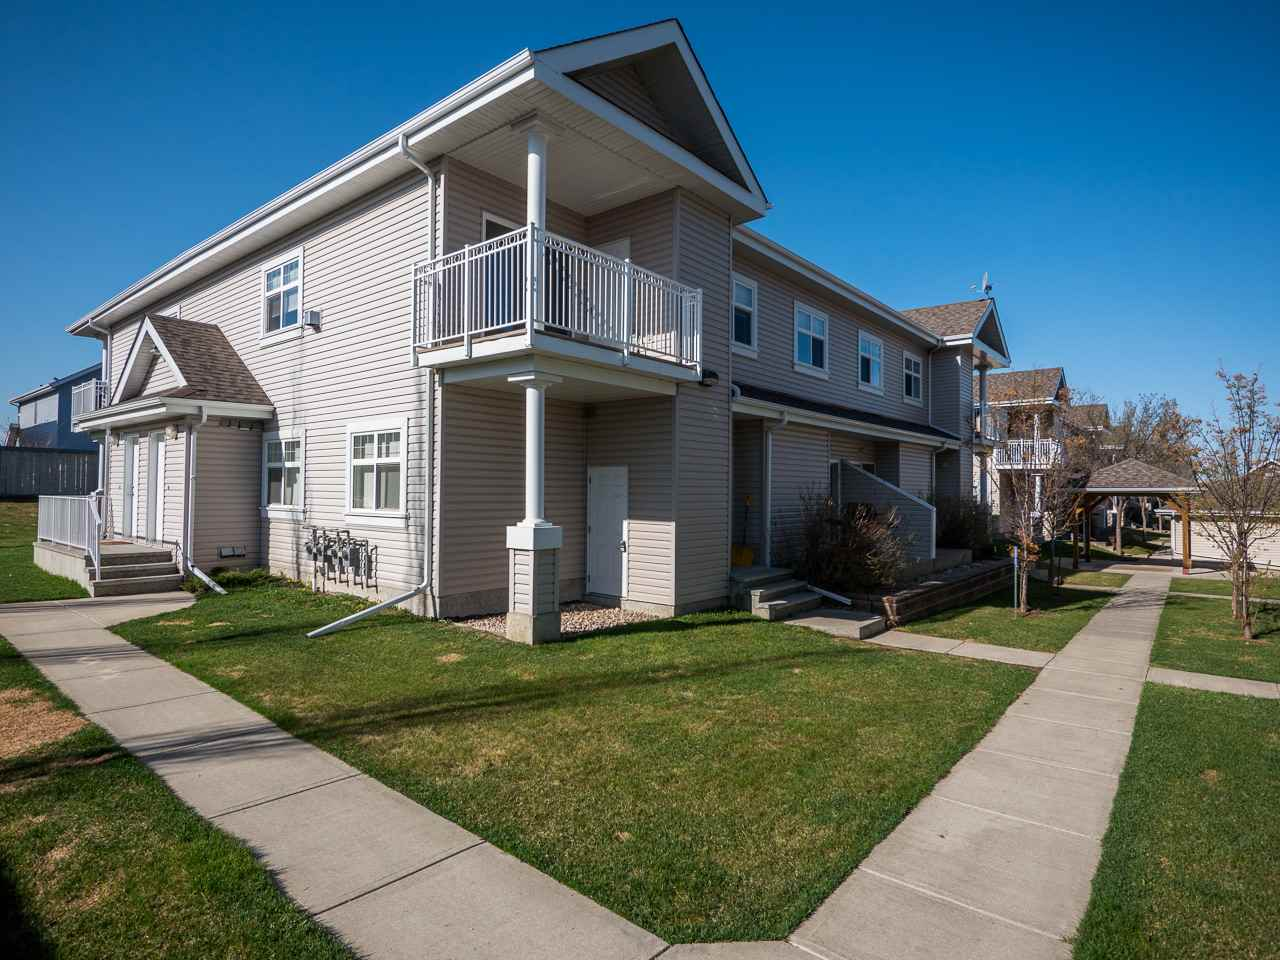 Photo 21: 71 3040 SPENCE Way in Edmonton: Zone 53 Townhouse for sale : MLS(r) # E4063695